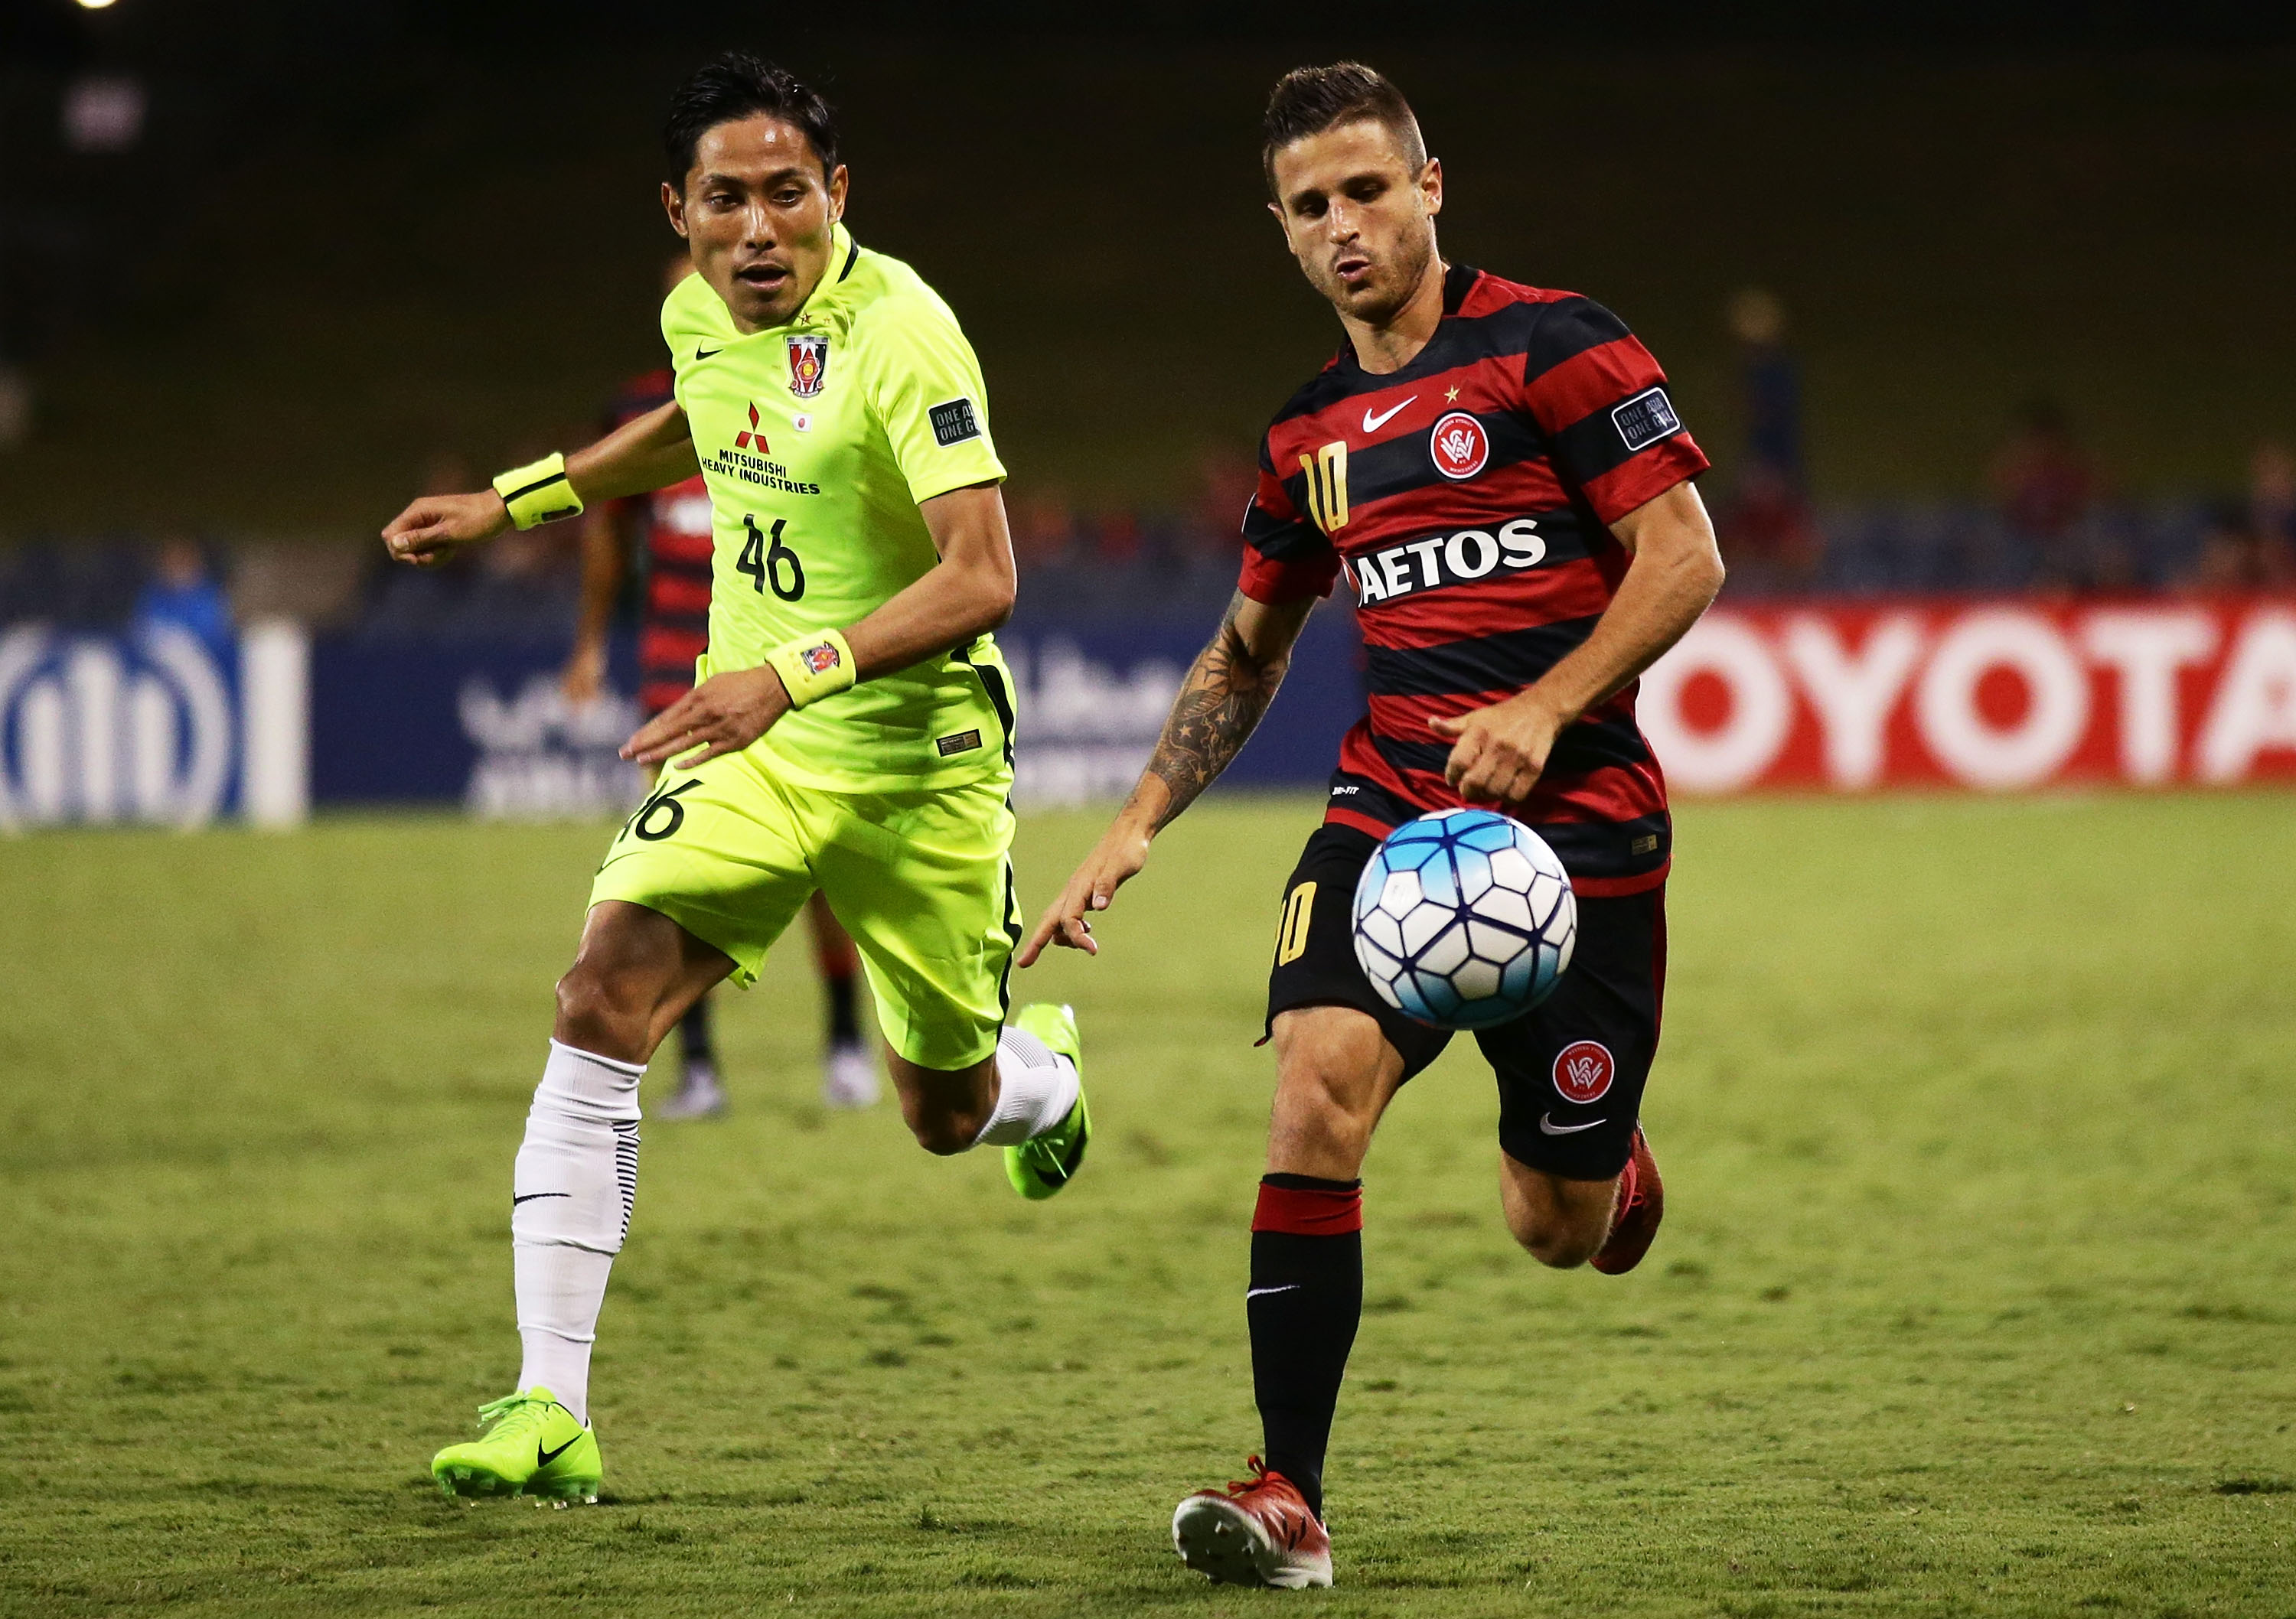 Nicolas Martnez of the Wanderers controls the ball during the AFC Asian Champions League match between the Western Sydney Wanderers and the Urawa Red Diamonds at Campbelltown Sports Stadium on February 21, 2017 in Sydney, Australia.